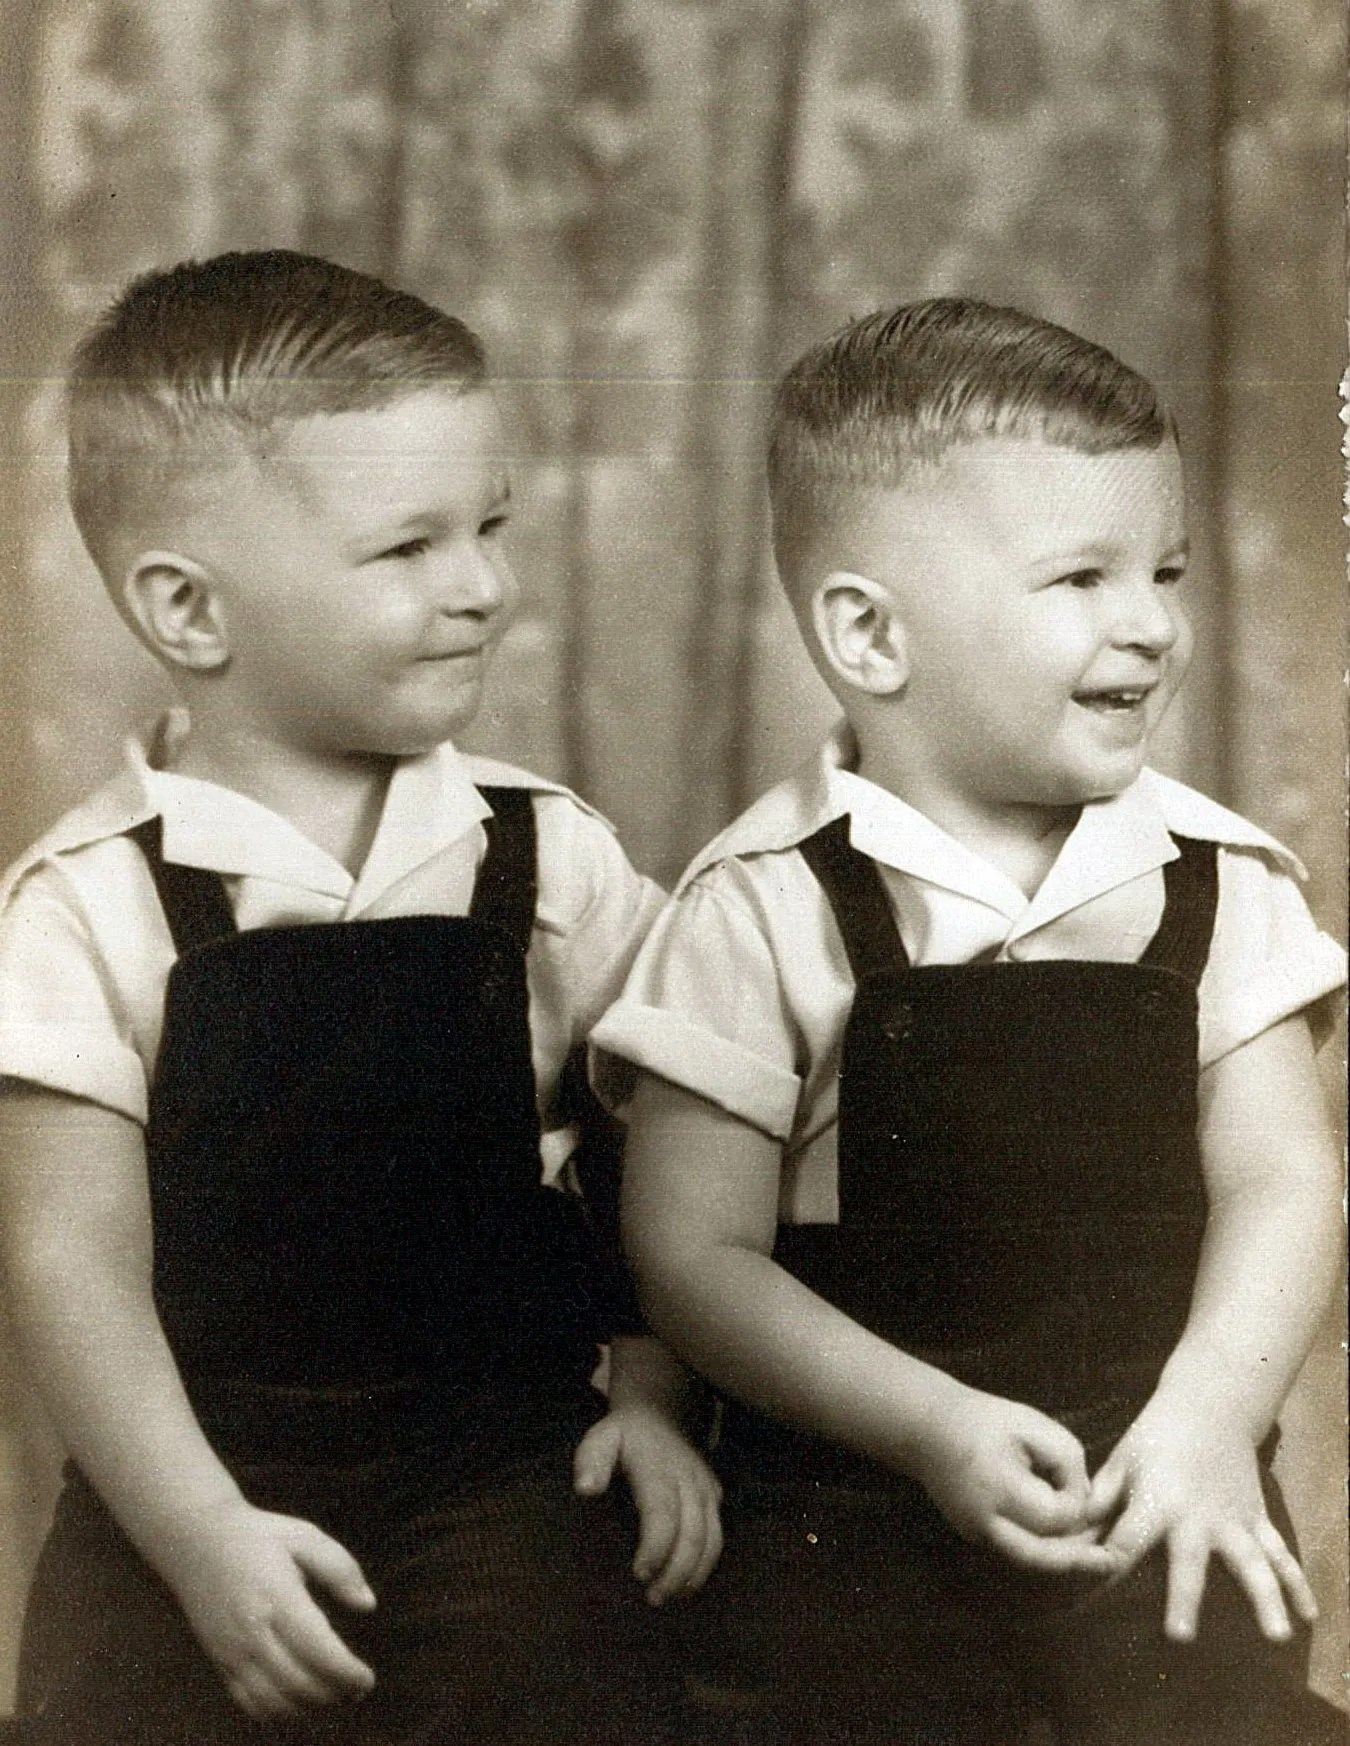 Jay with his twin brother.